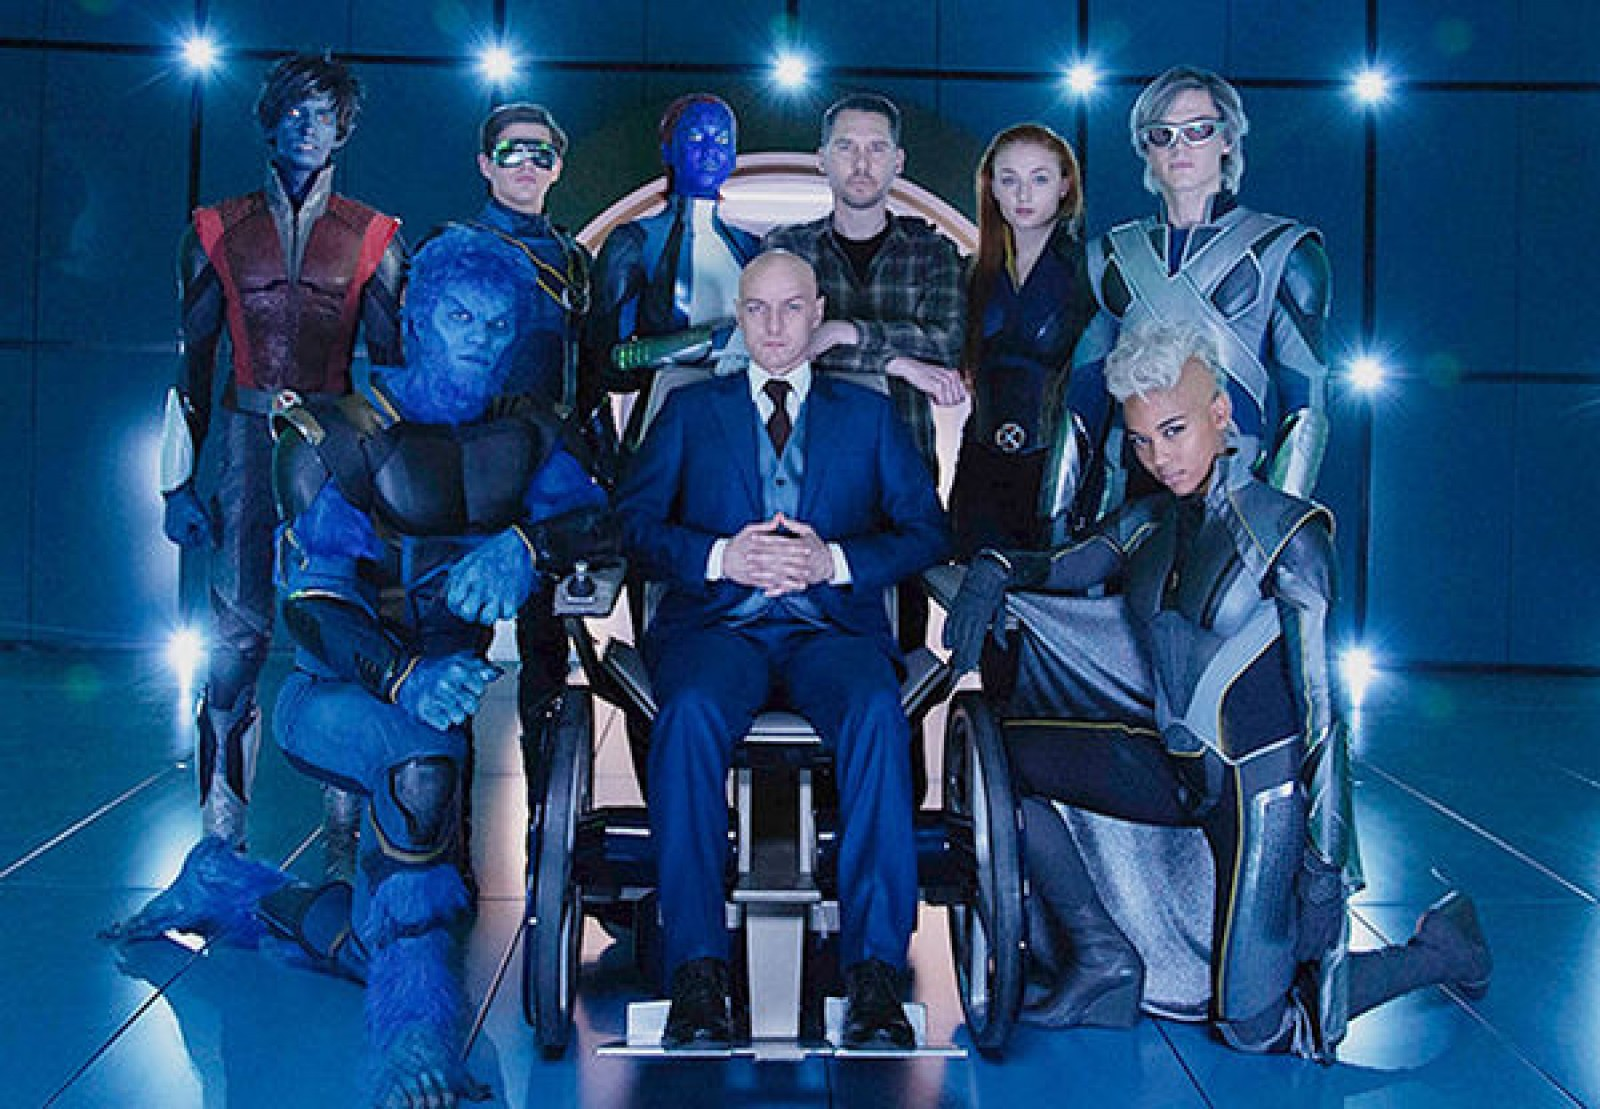 copia_de_x-men_apocalypse_cast.jpg